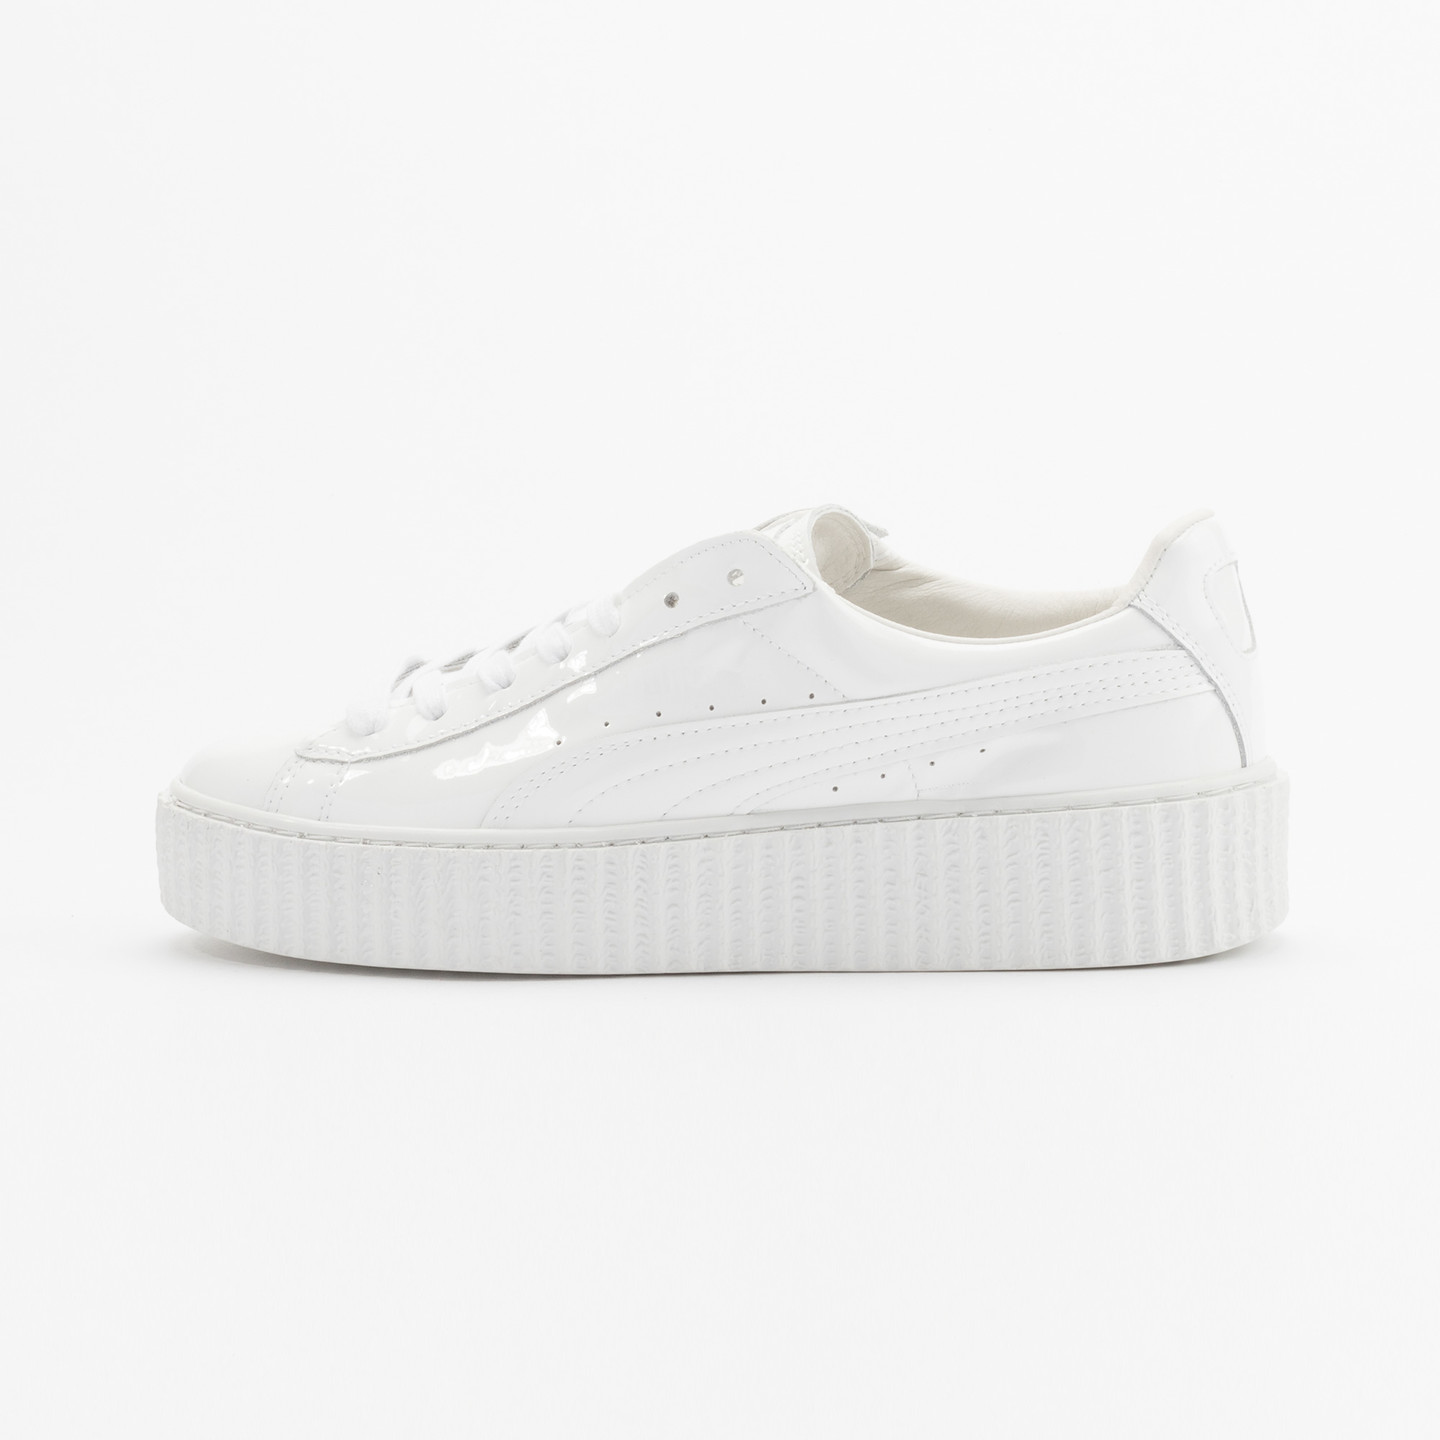 Puma Rihanna Basket Creepers Glo Triple White 362269 01-37.5